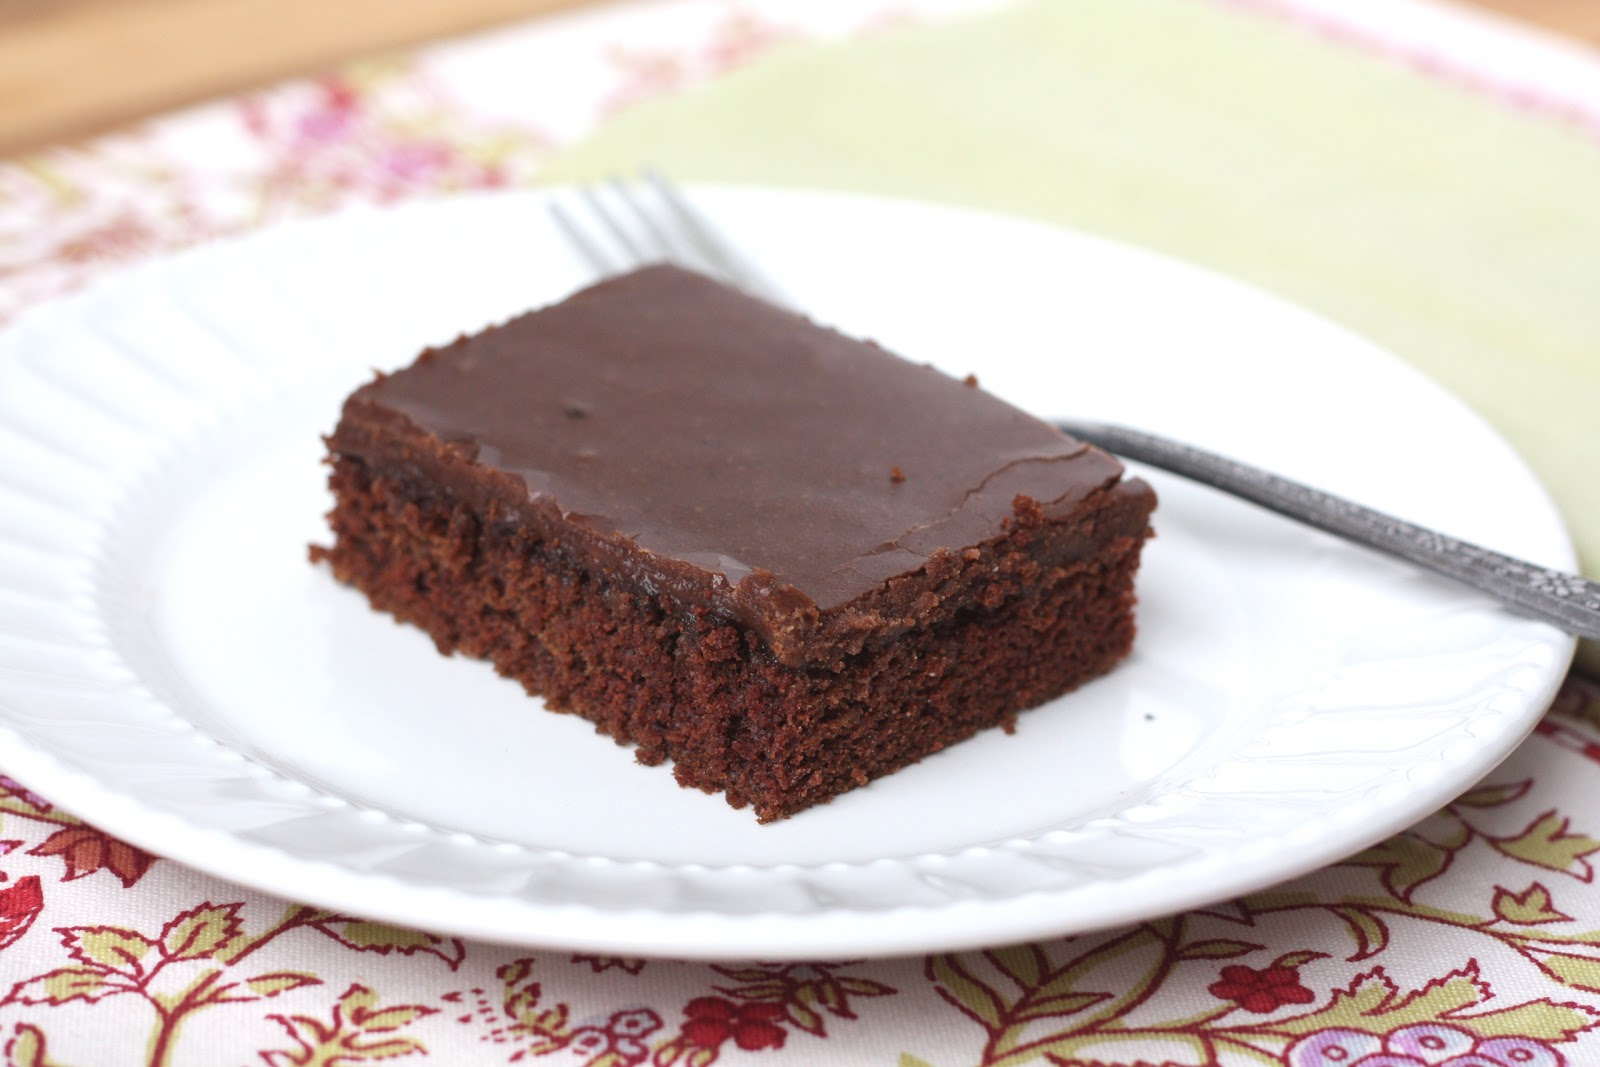 ... In The Kitchen: Texas Sheet Cake a.k.a. Best Chocolate Cake Ever